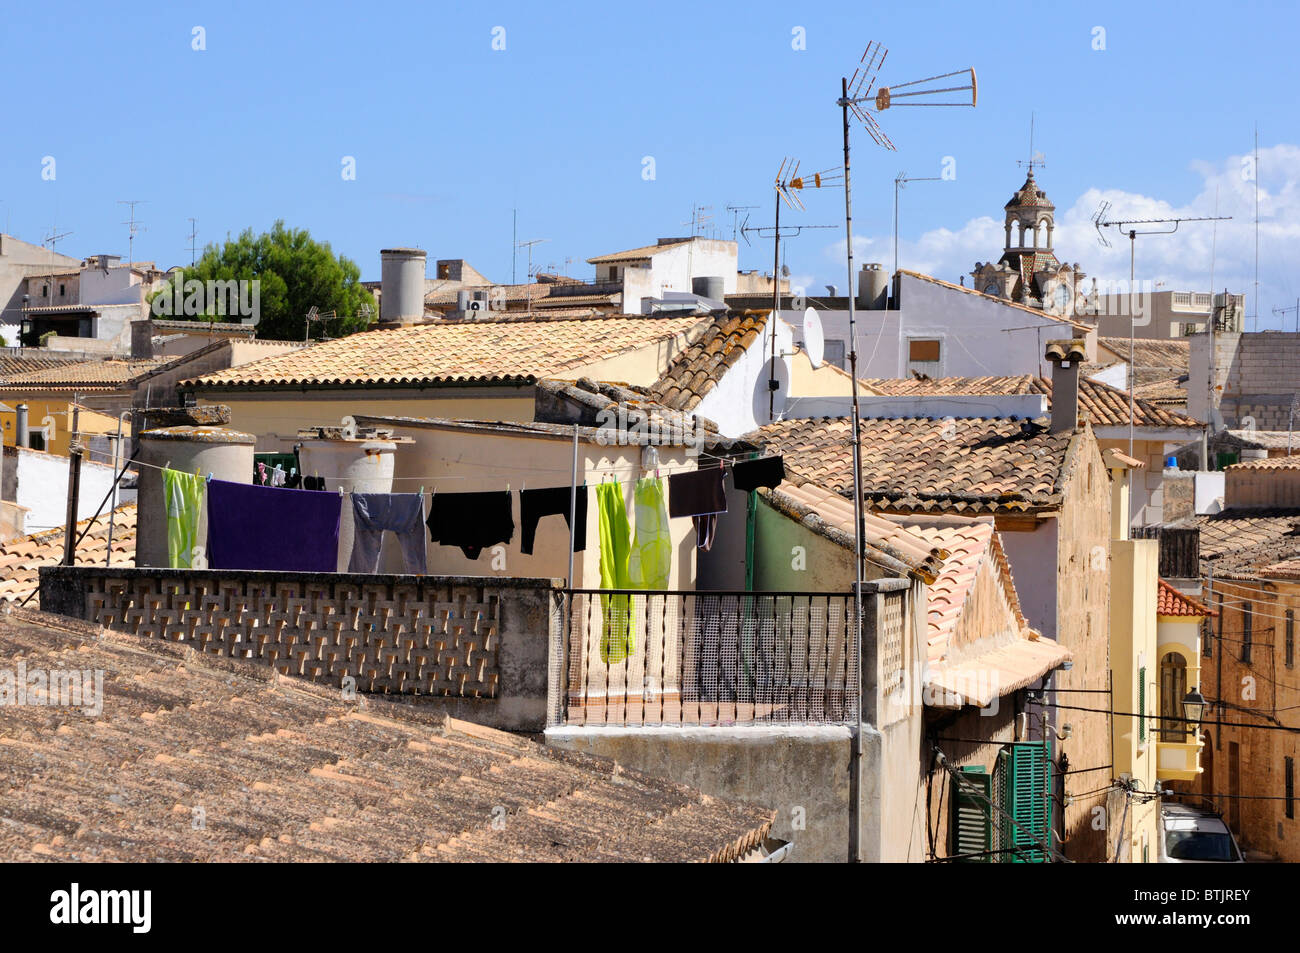 The rooftops of Alcudia, Majorca - Stock Image